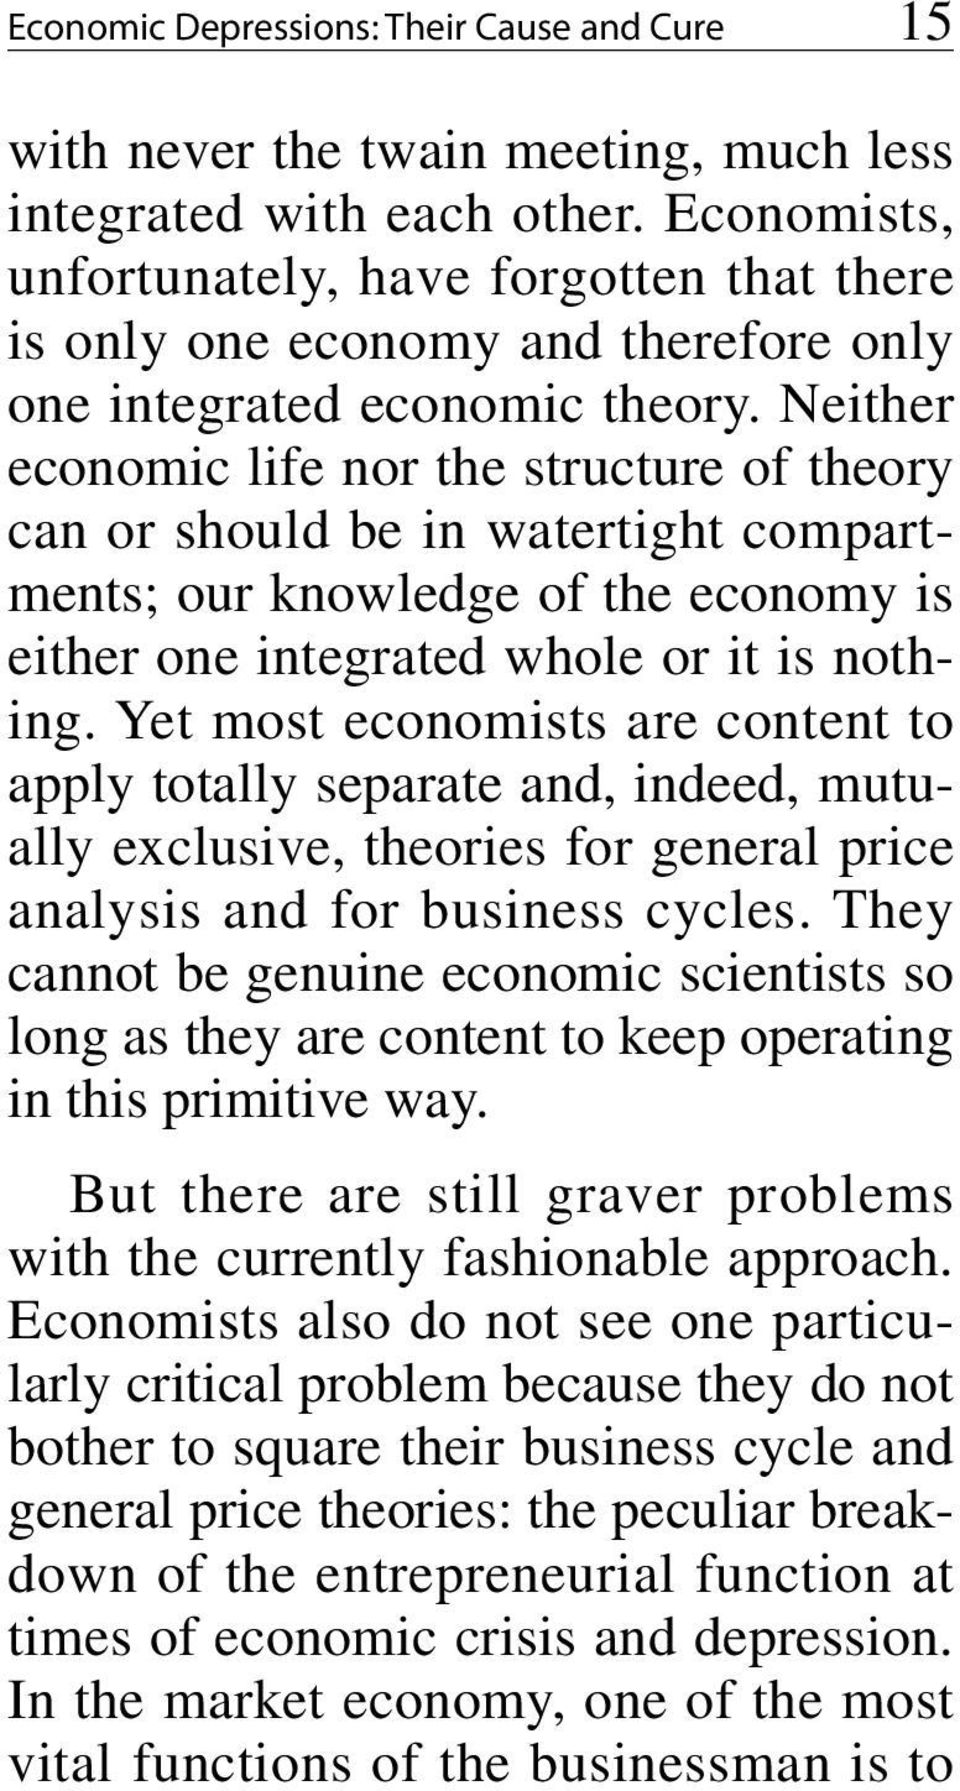 Neither economic life nor the structure of theory can or should be in watertight compartments; our knowledge of the economy is either one integrated whole or it is nothing.